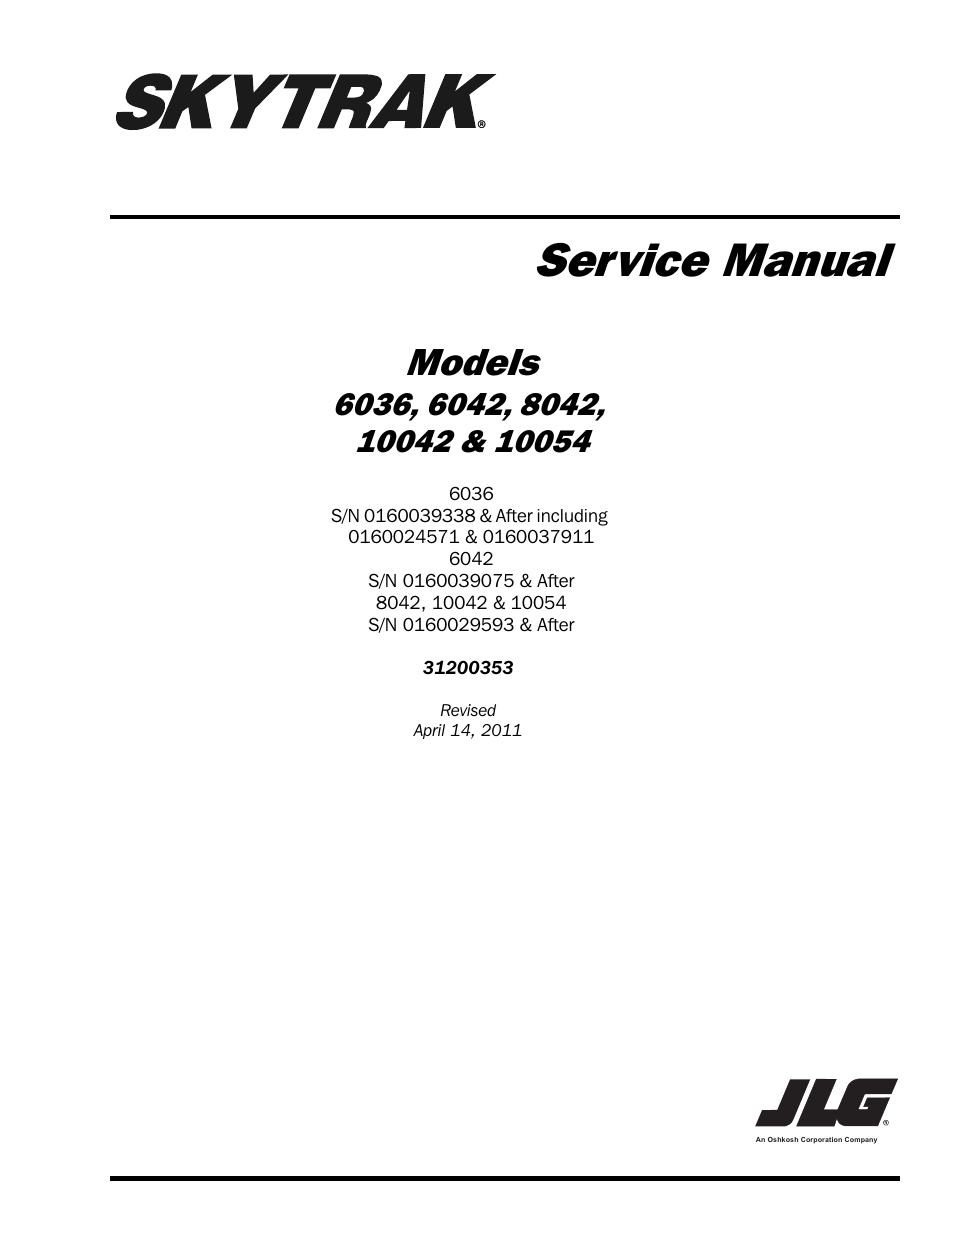 SkyTrak 8042 Service Manual User Manual | 230 pages | Also for: 6042  Service Manual, 6036 Service Manual, 10054 Service Manual, 10042 Service  Manual